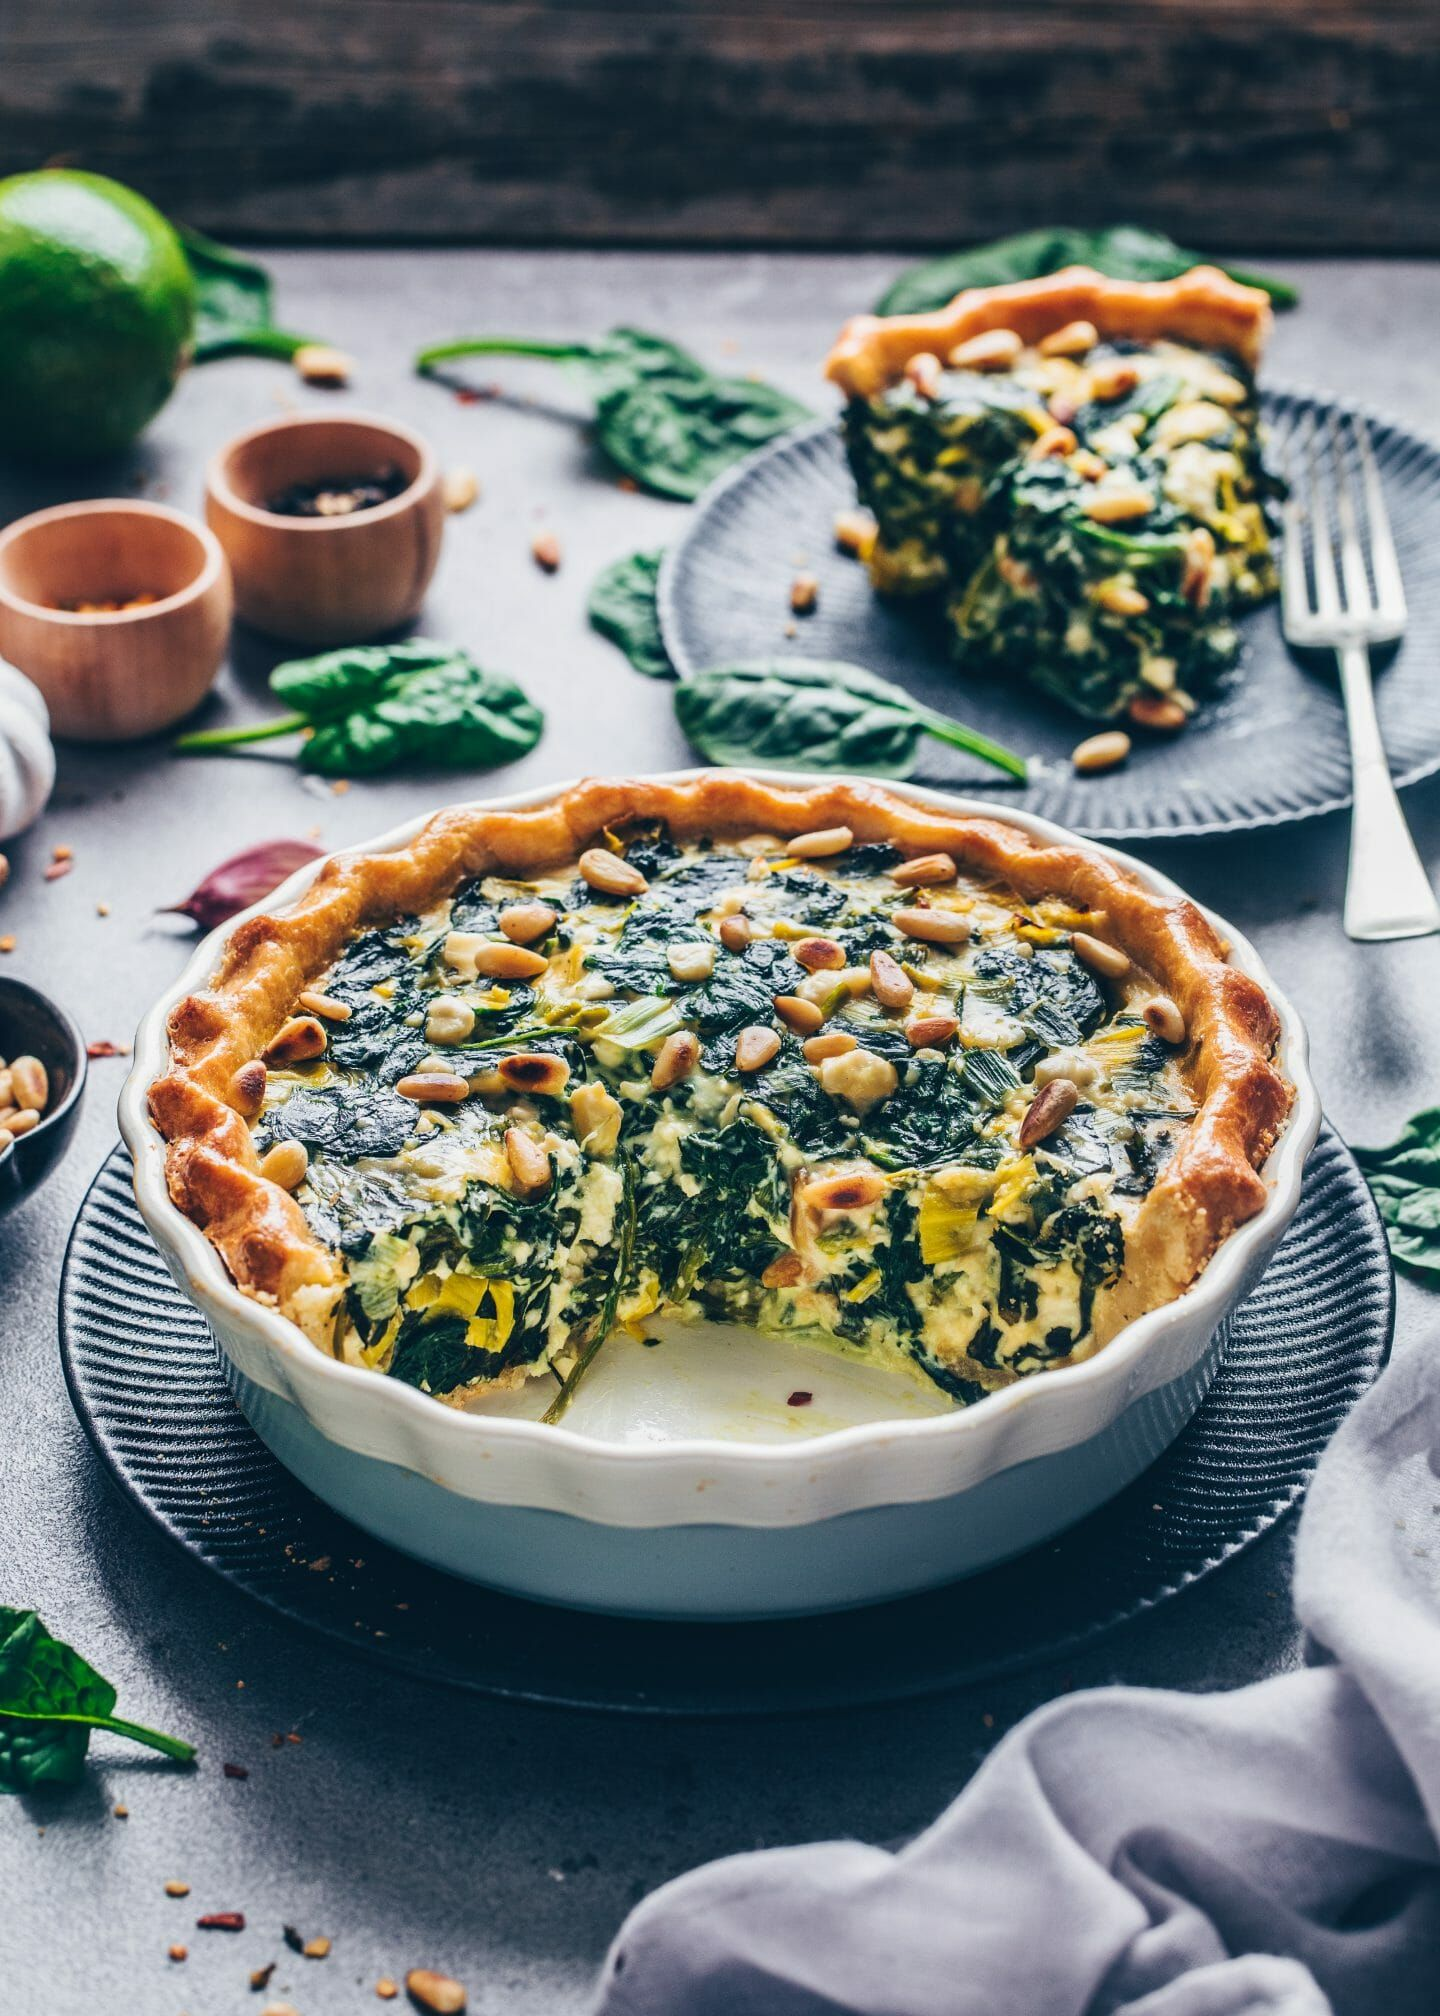 This Vegan Spinach Quiche Is Creamy Cheesy And Totally Delicious It Is Baked In A Flaky Homemade Pie Crust Quiche Recipes Spinach Quiche Quiche Recipes Easy